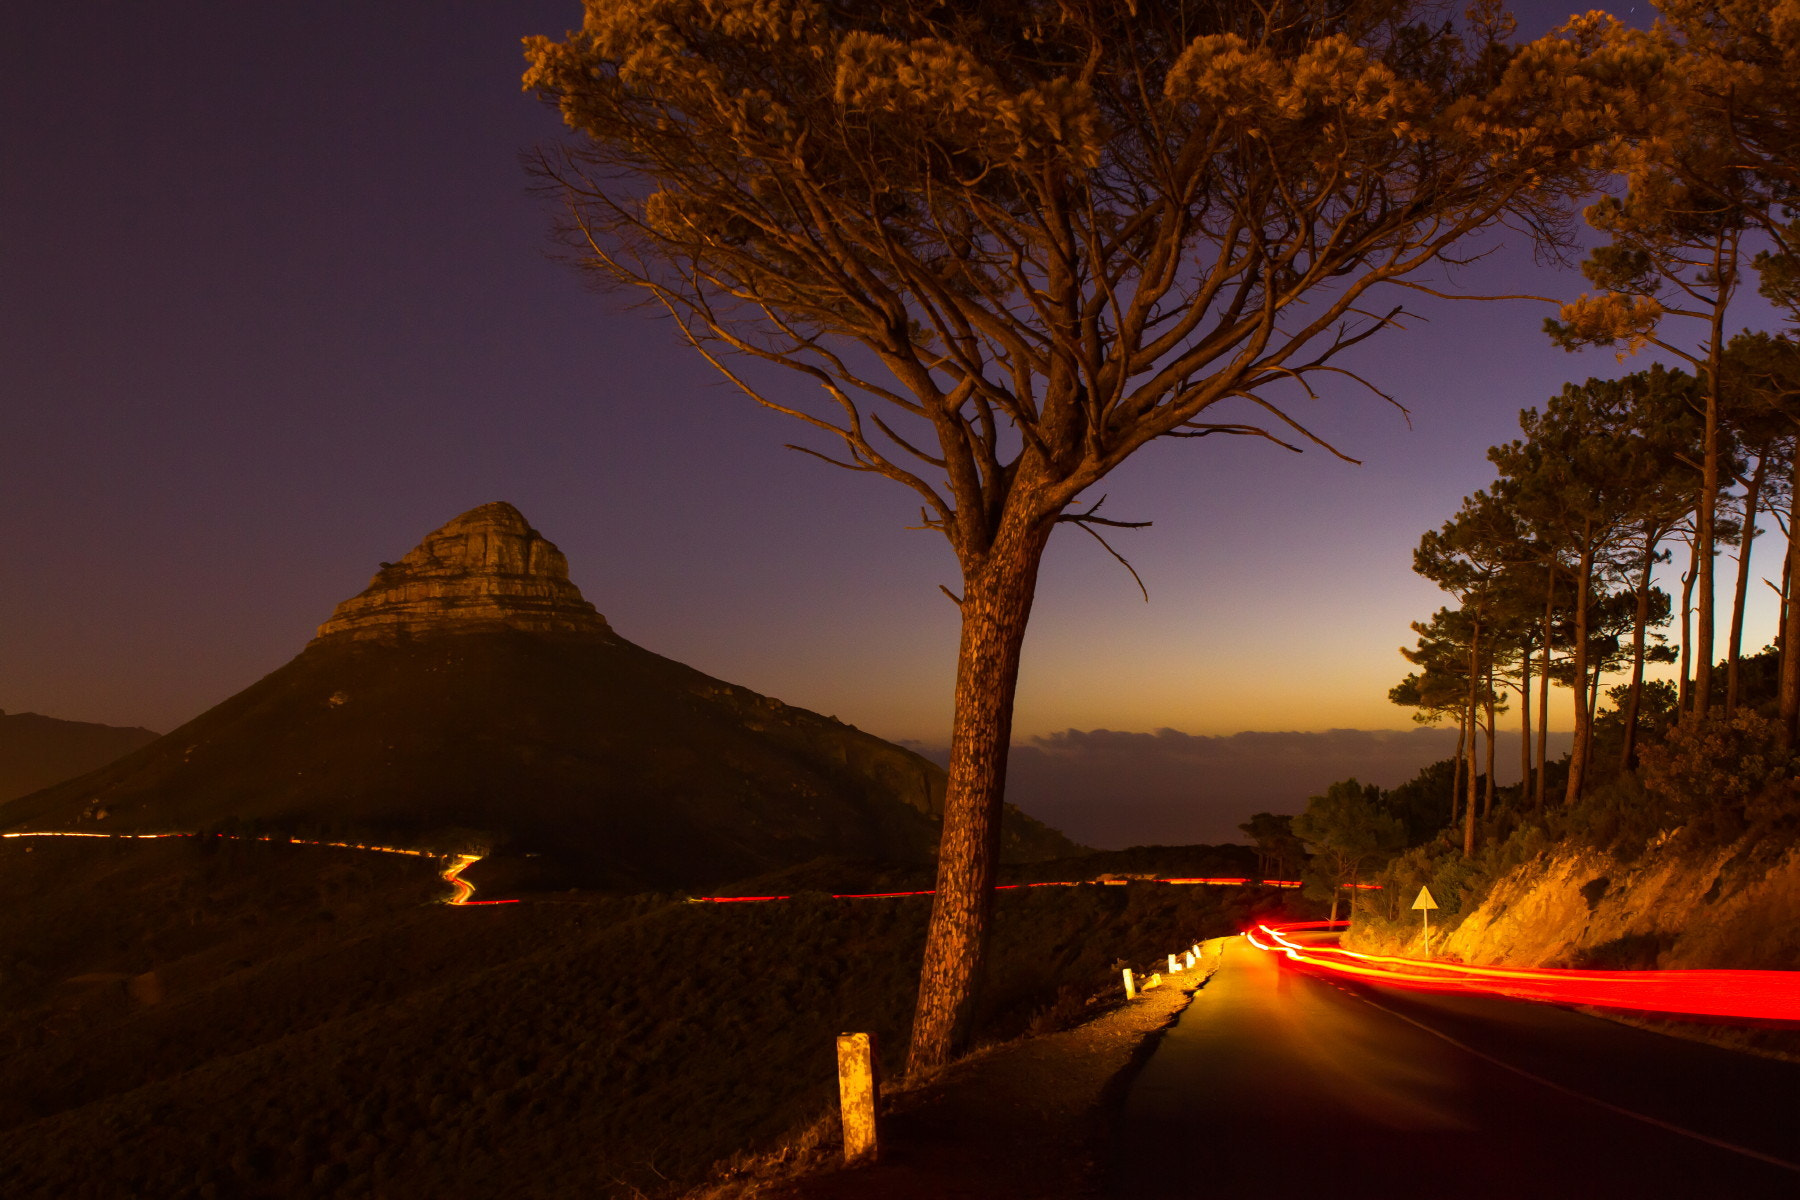 Photograph Light Trail by Michael Wrankmore on 500px